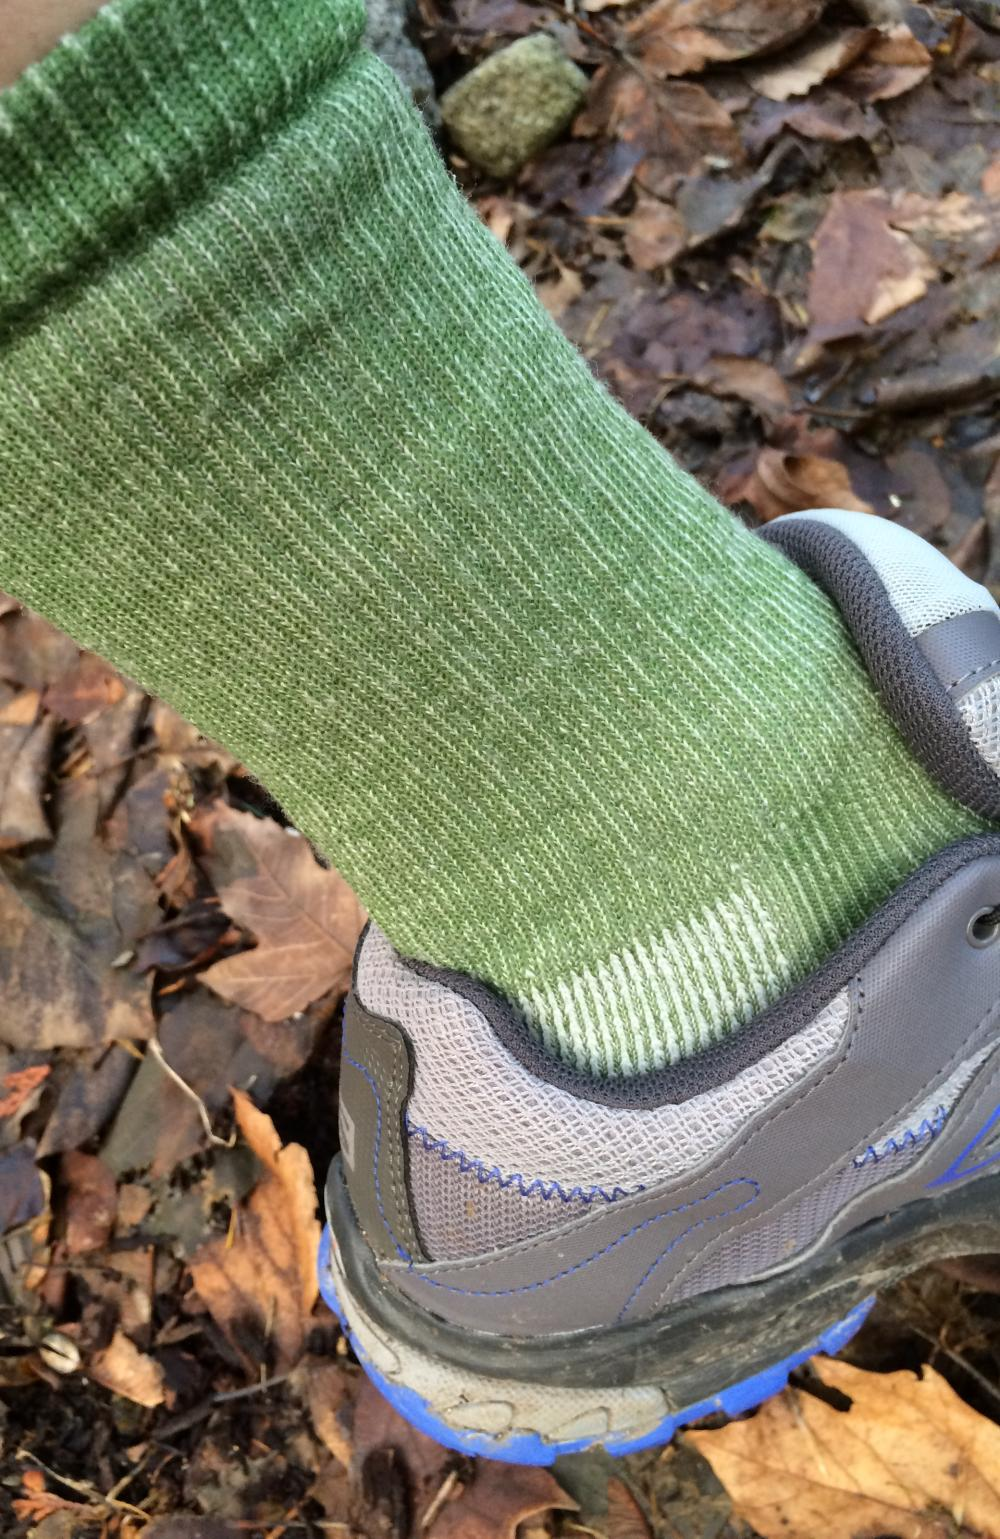 Green hiking sock in a gray and blue trail shoe